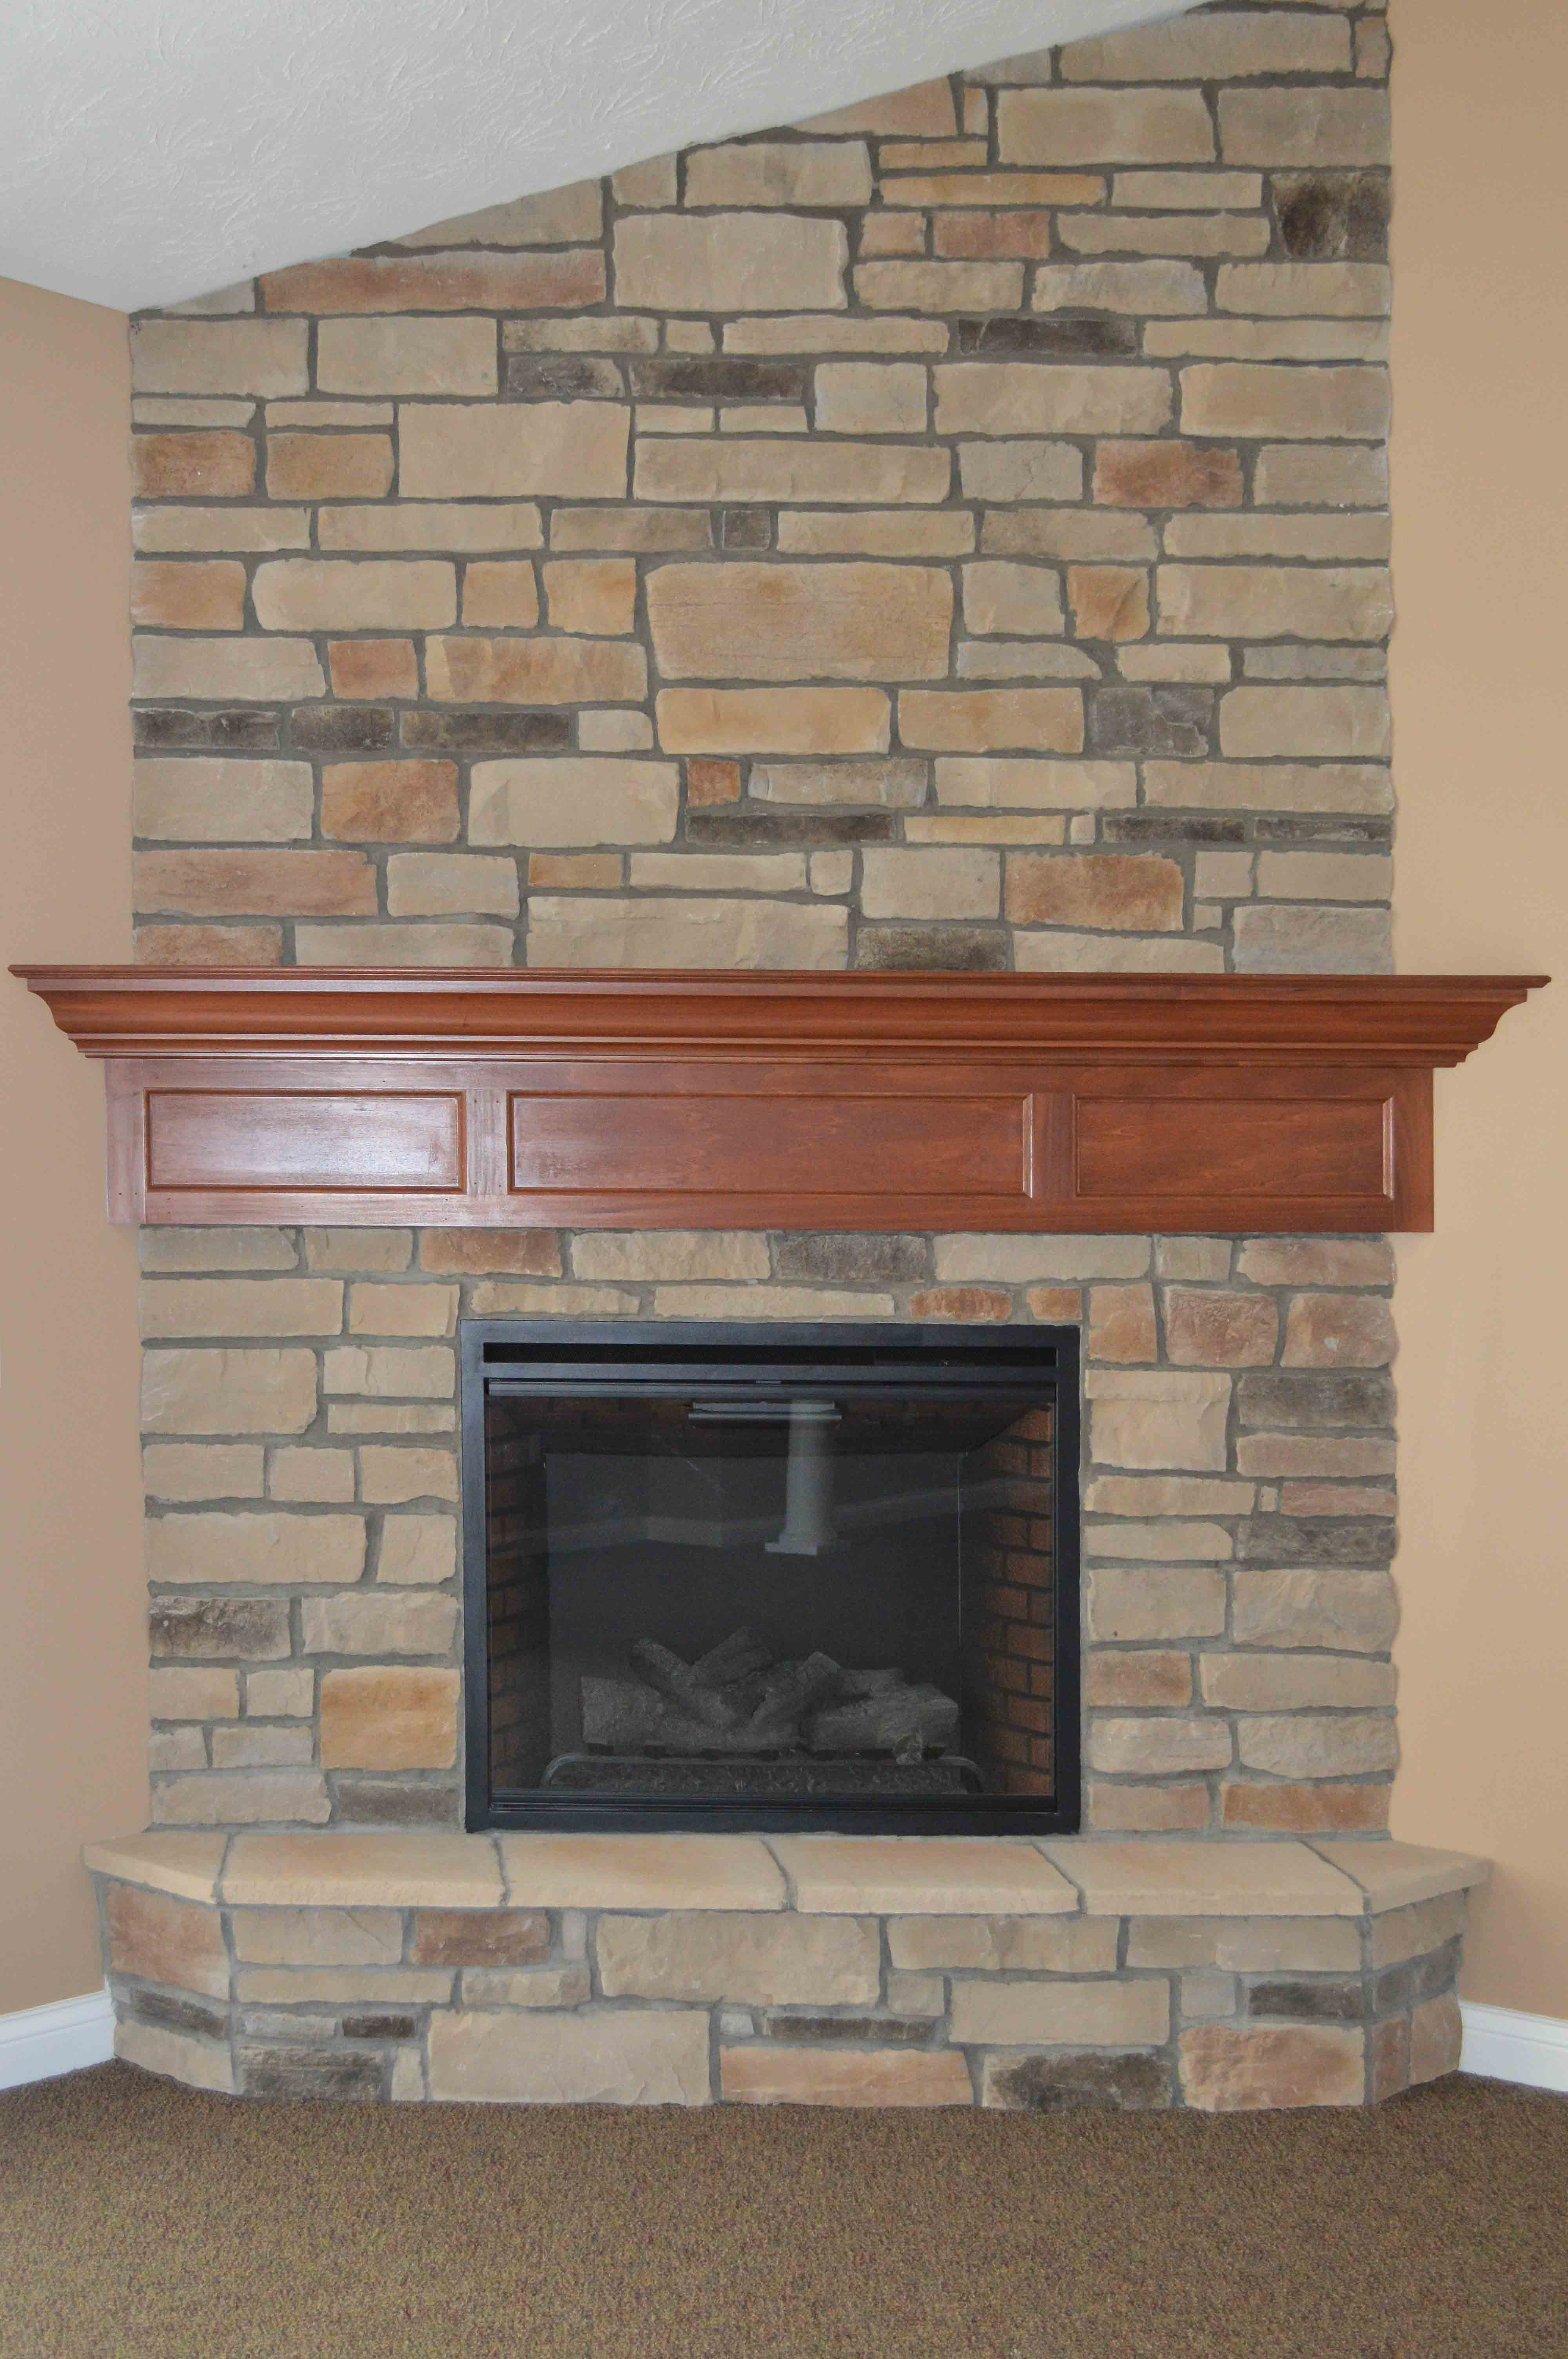 Fireplace Raised Hearth. Corner fireplace with Natural Blend Weather Ledge stone  raised hearth and stained wood mantle Fireplaces Harlow Builders Inc